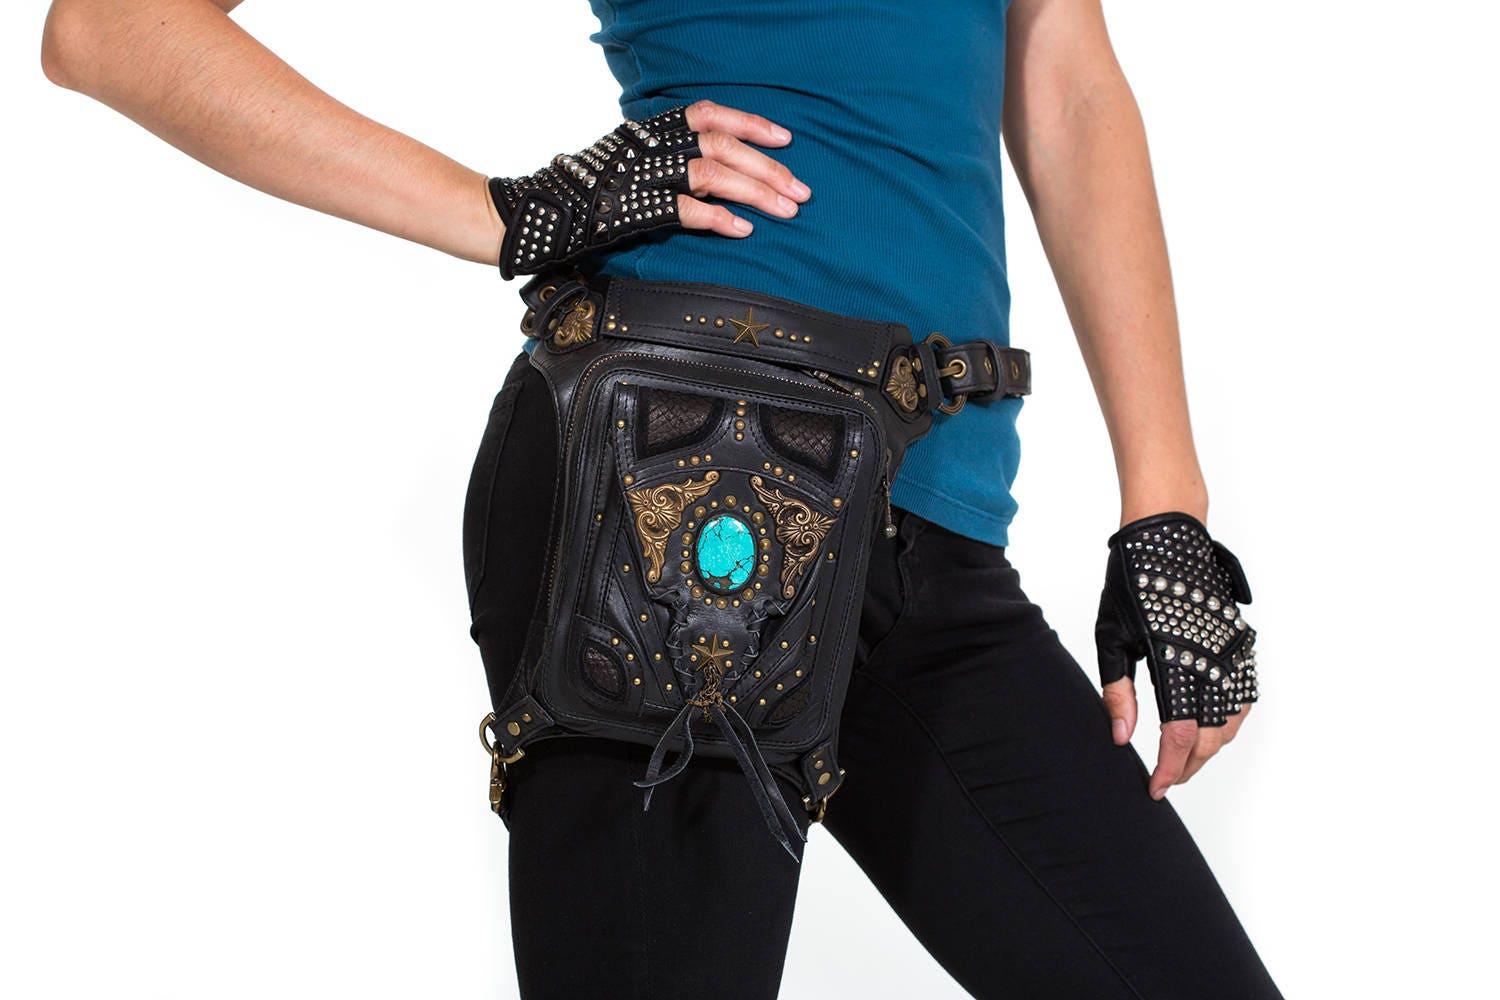 cd1462b59b3a VINTAGE VIBES Black Leather Holster and Hip Bag With Turquoise